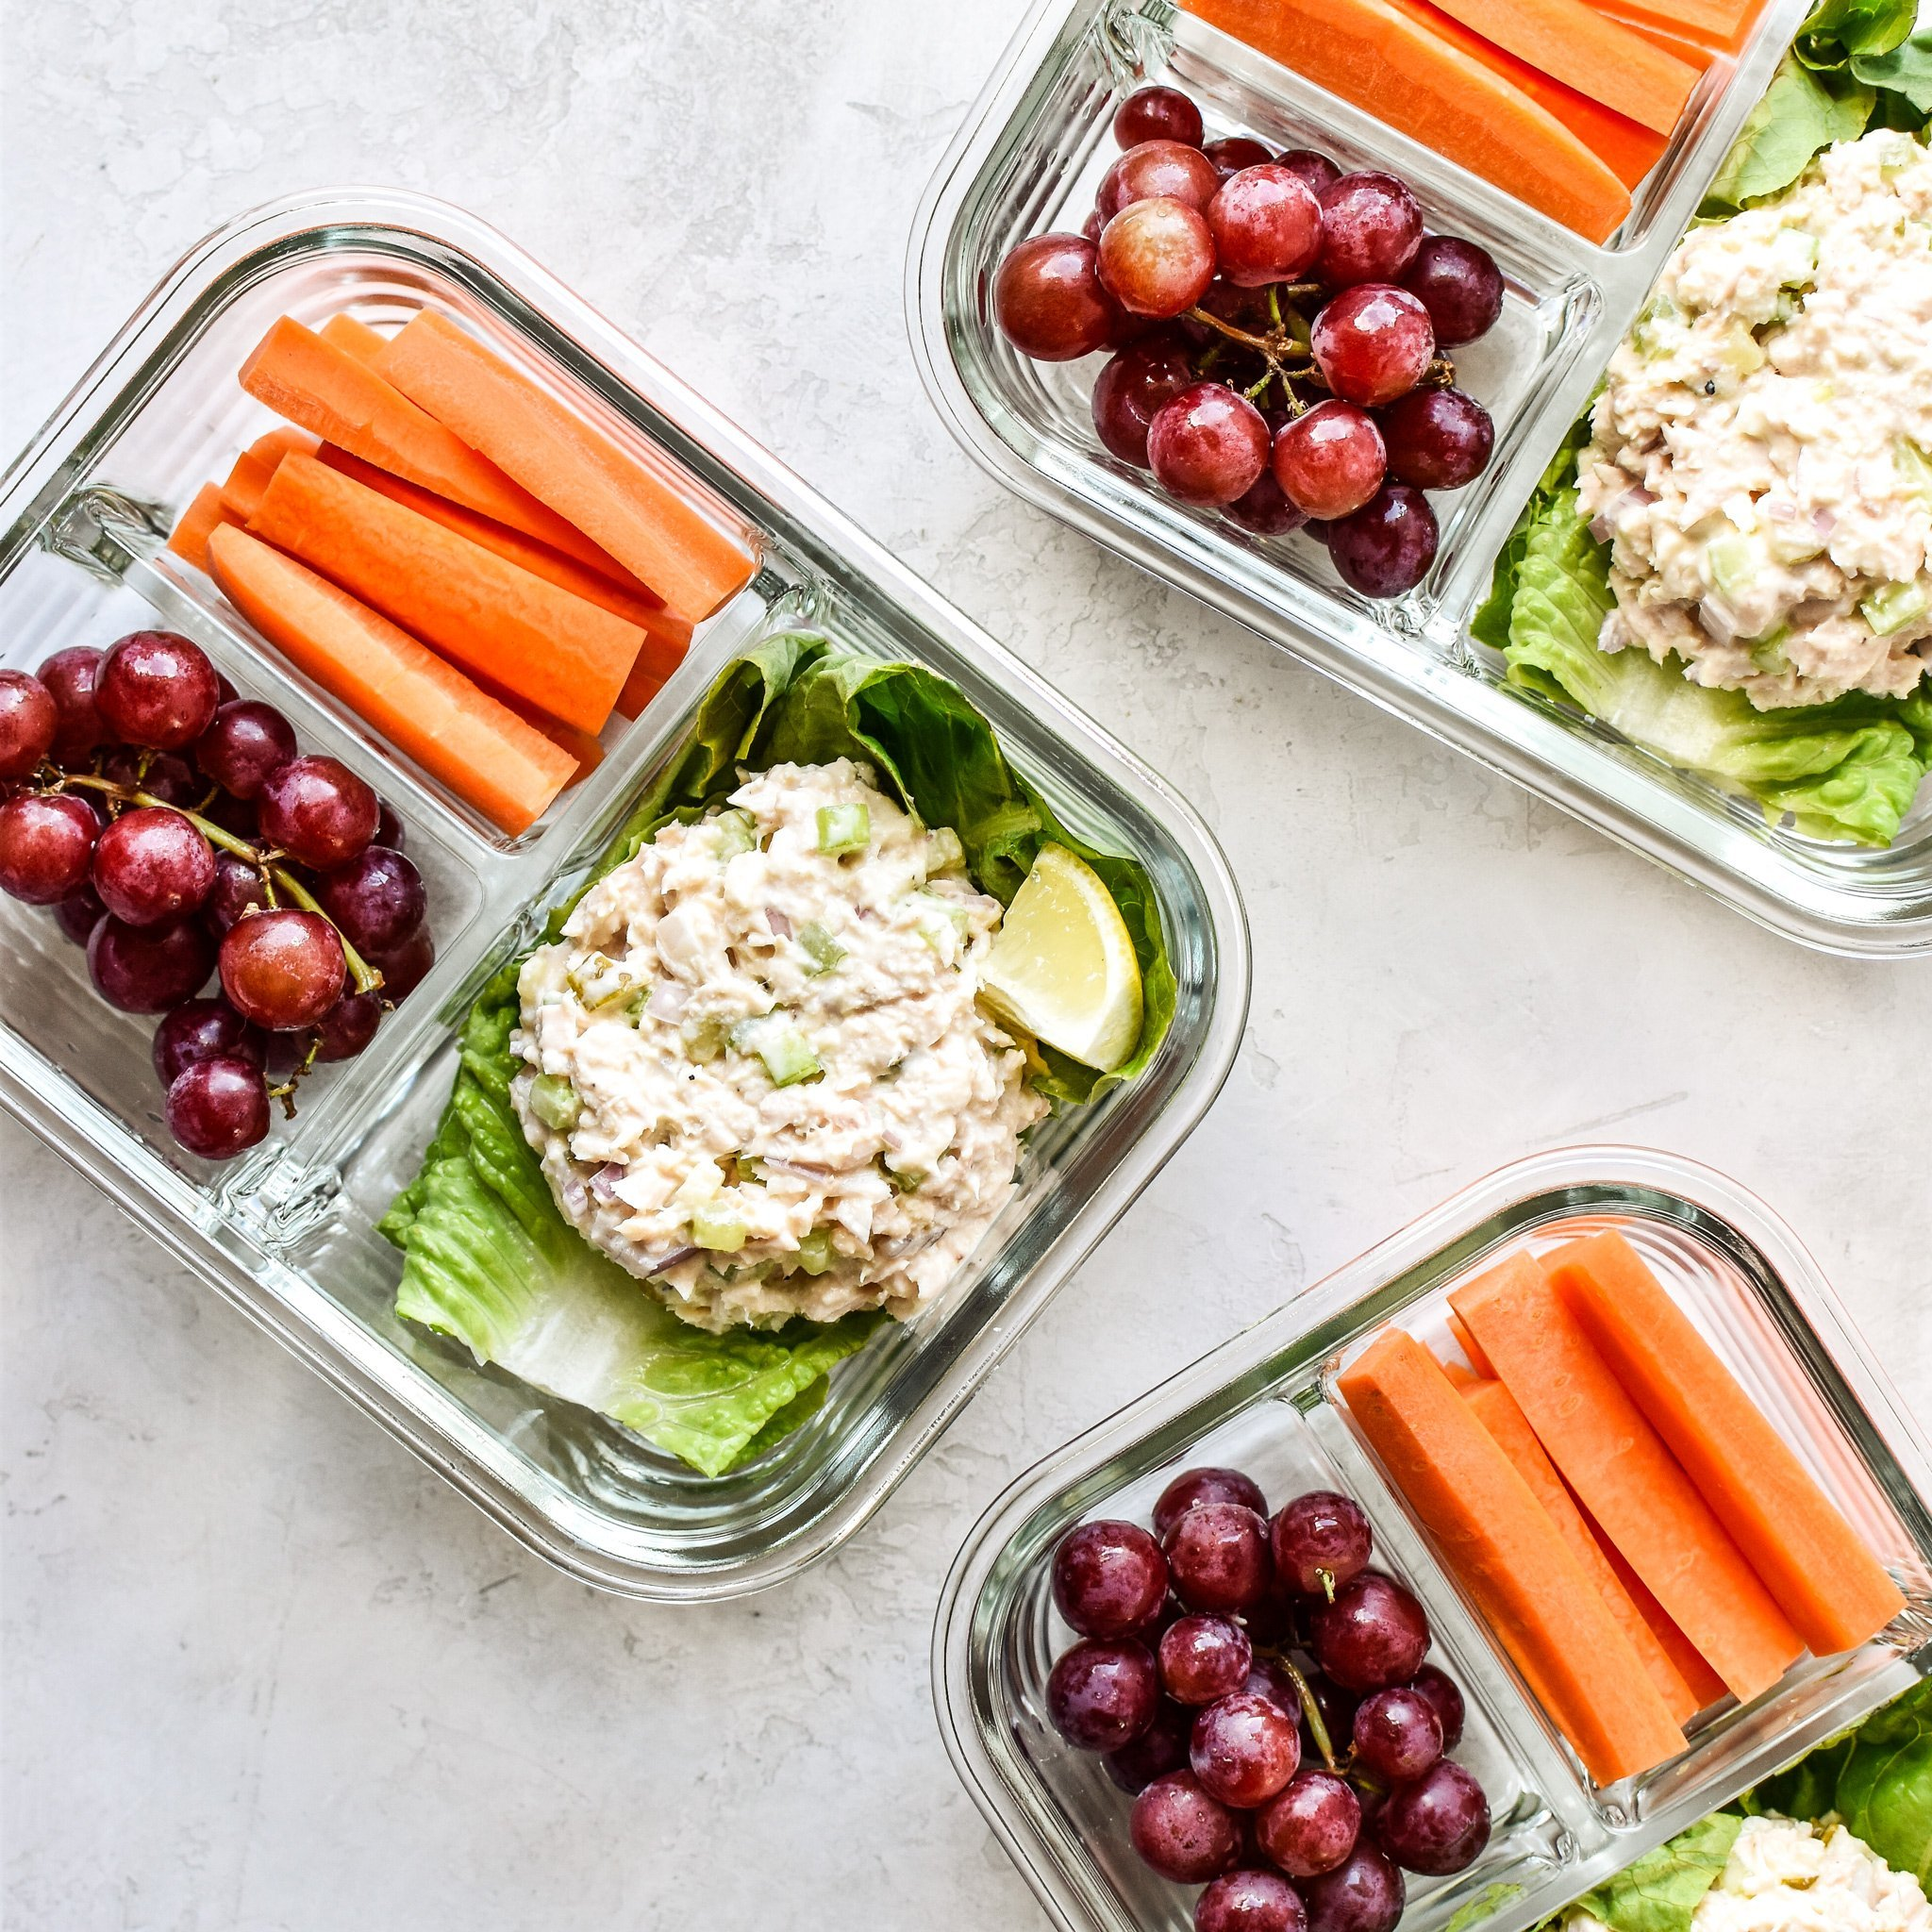 Low Carb Tuna Salad Lettuce Wraps Meal Prep Project Meal Plan